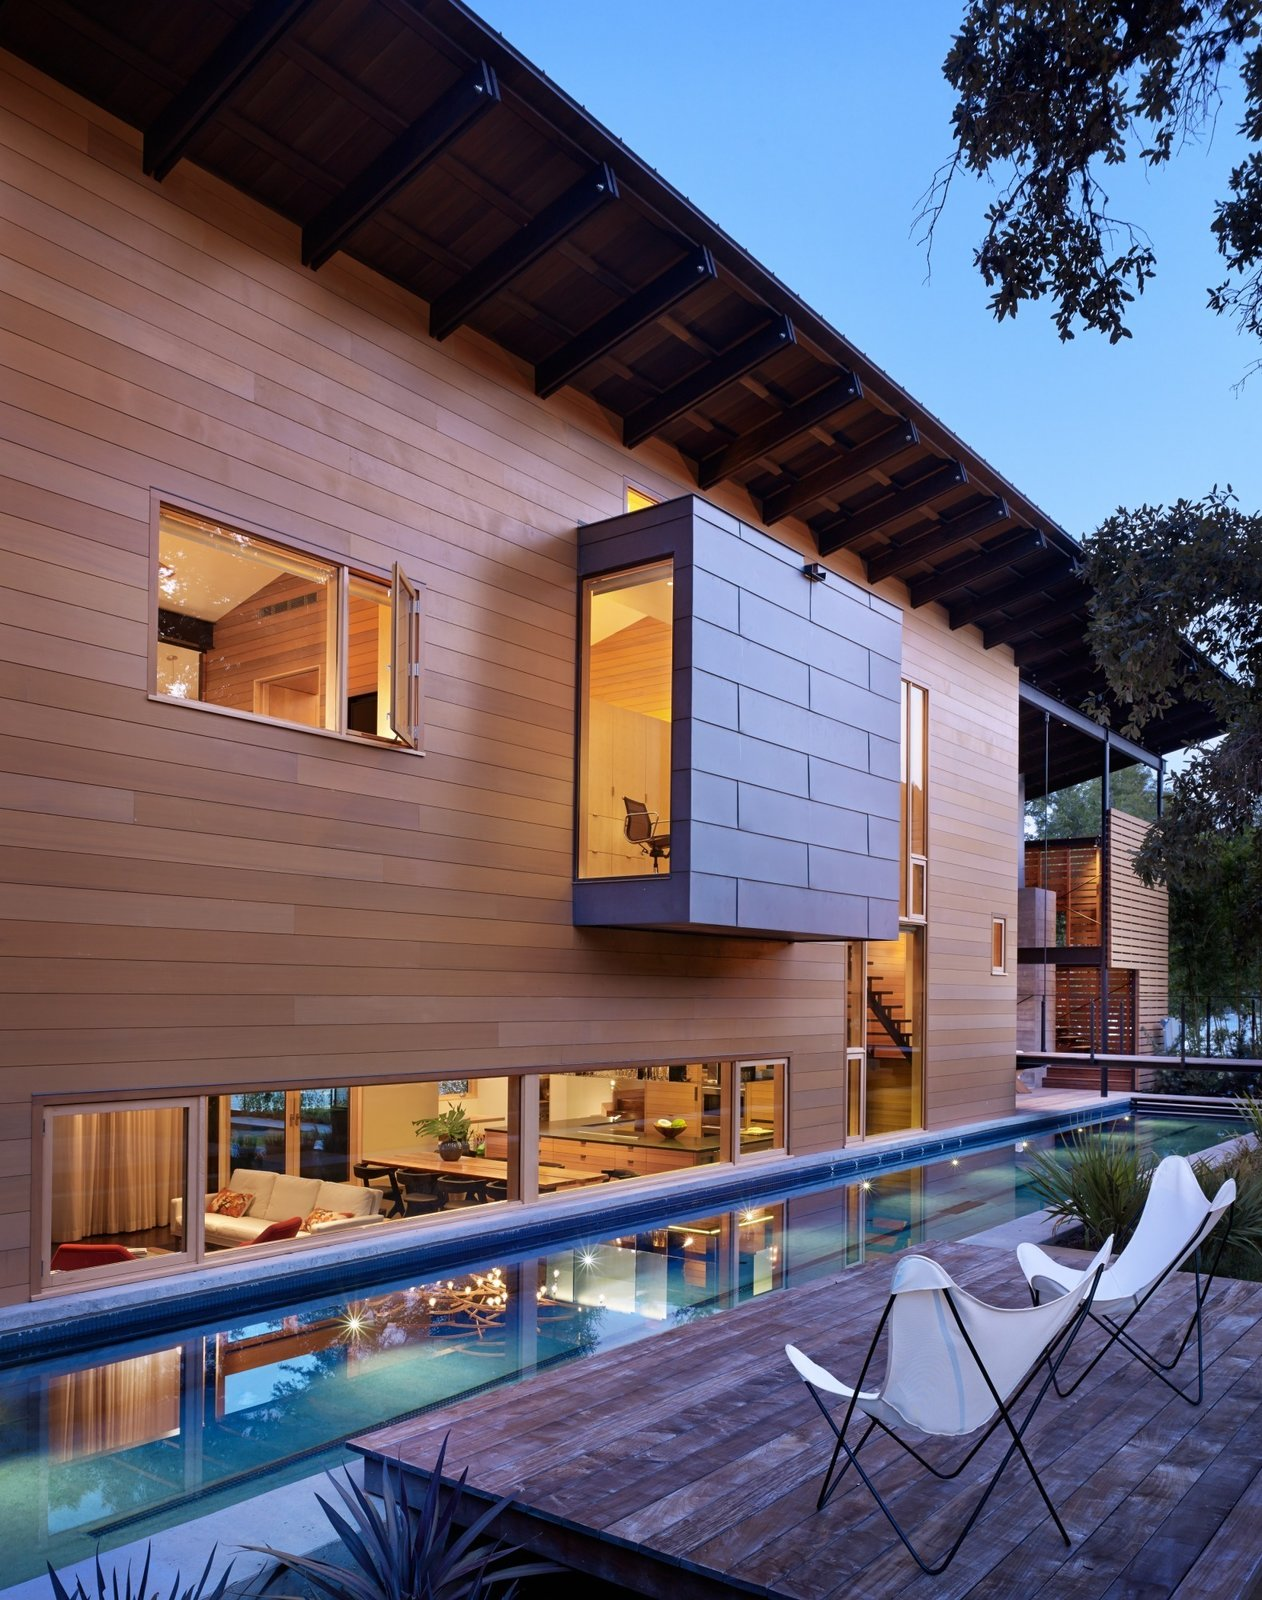 """Exposing the craft and detail of the materials was a key part of the design,"" Flato notes. The texture of the house, he says, can be observed in the concrete retaining wall for the lap pool. Tagged: Large Pools, Tubs, Shower, Wood Patio, Porch, Deck, Small Patio, Porch, Deck, Back Yard, Exterior, House, and Wood Siding Material.  Modern Pool Design by Dwell from Hog Pen Creek"